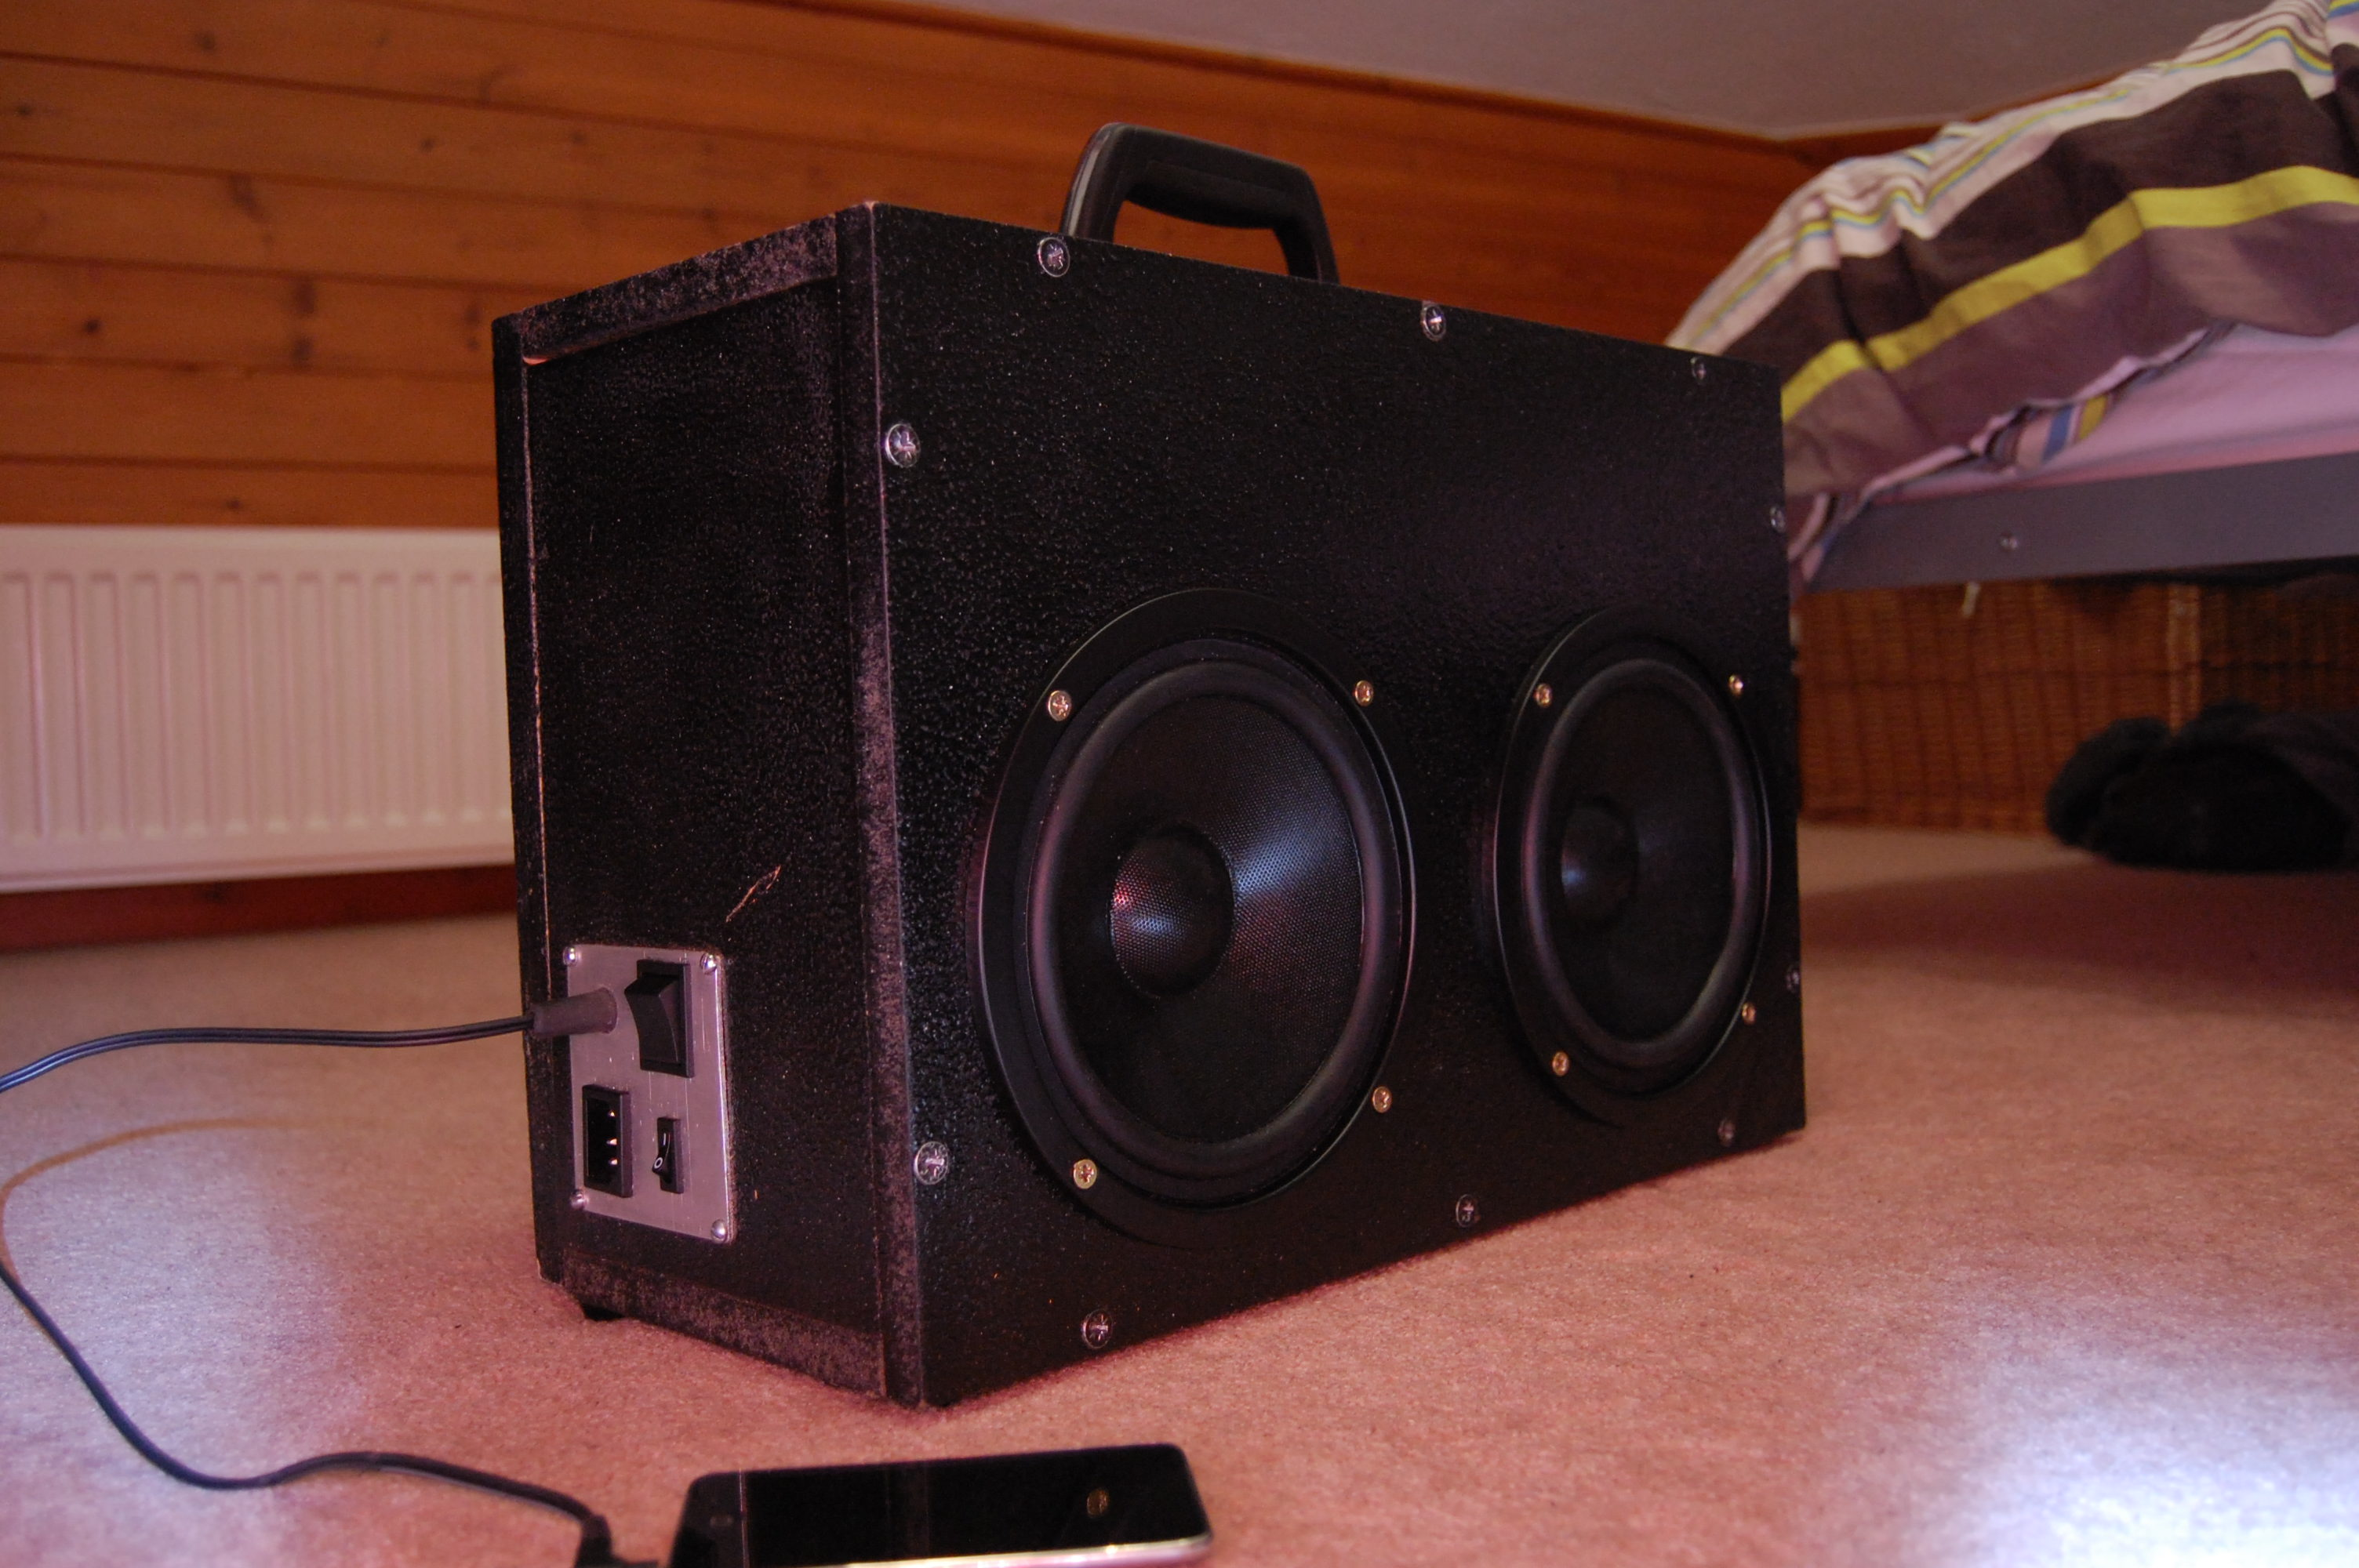 200w boombox how to build  [ 2100 x 1396 Pixel ]